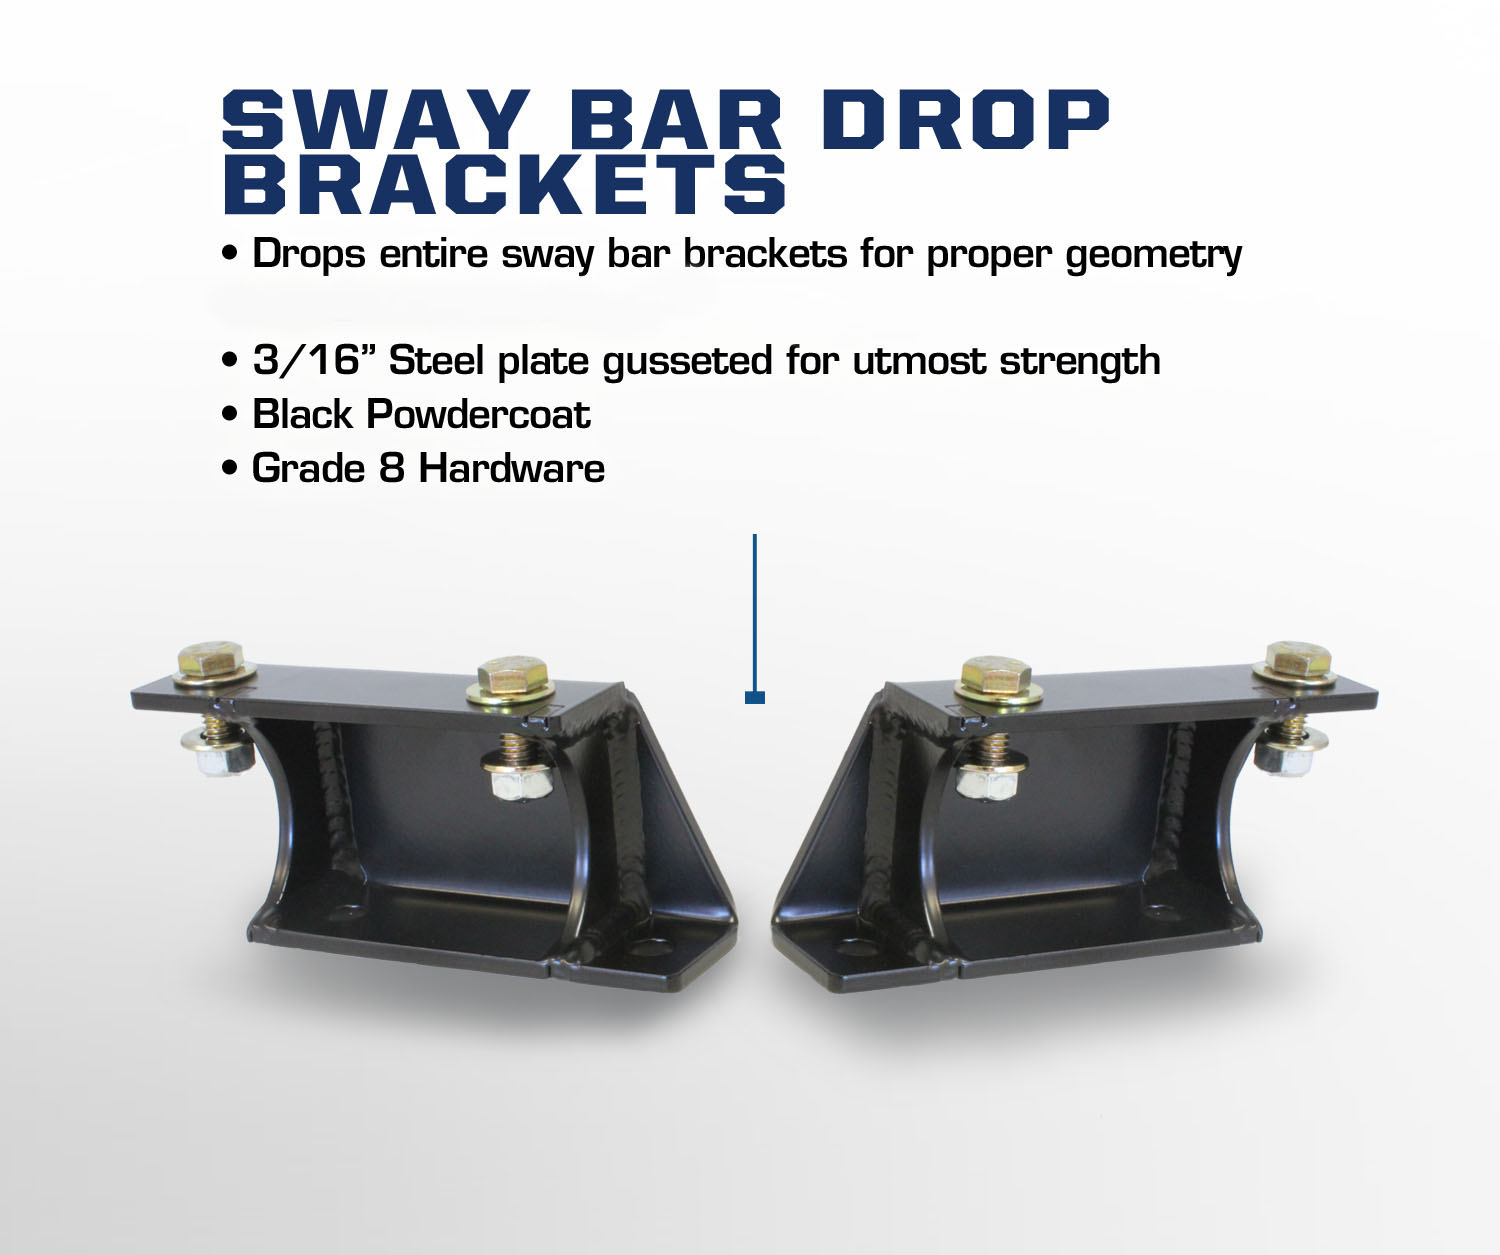 Ford Sway Bar Bracket : Carli ford sway bar drop brackets